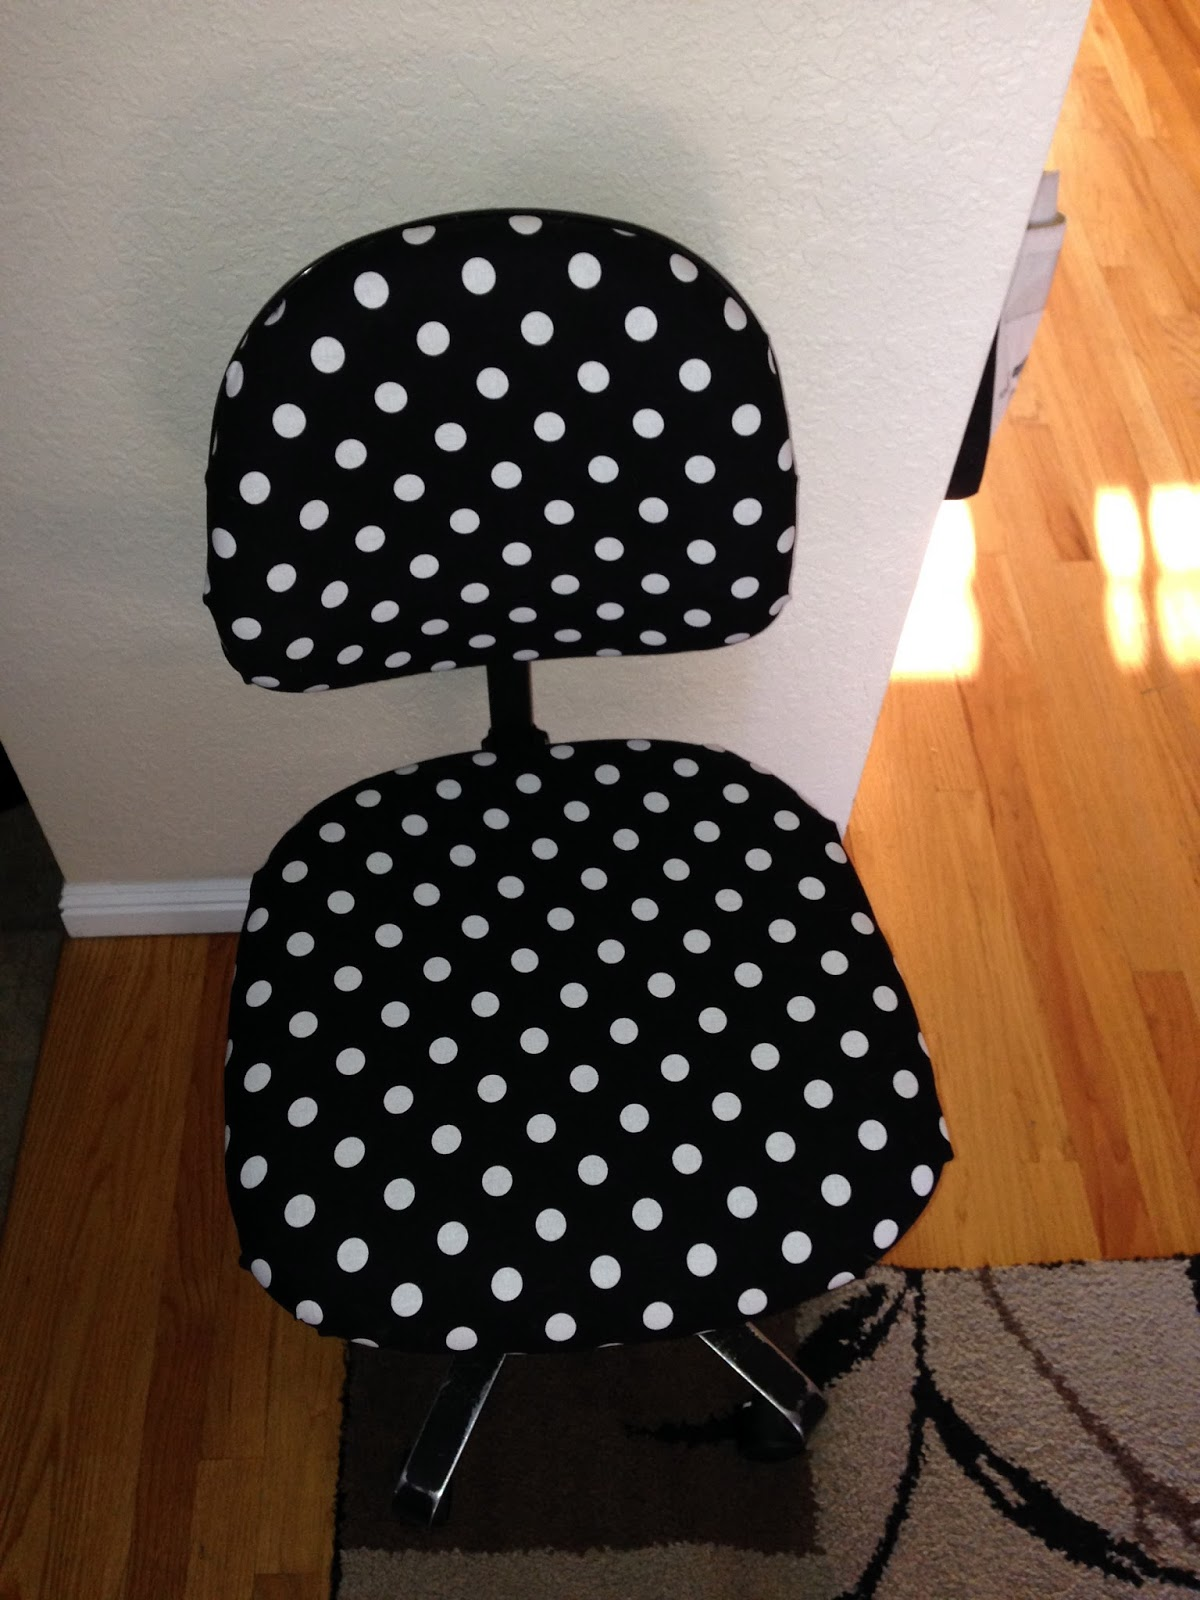 recovered classroom chair, polka dot chair, kindergarten classroom